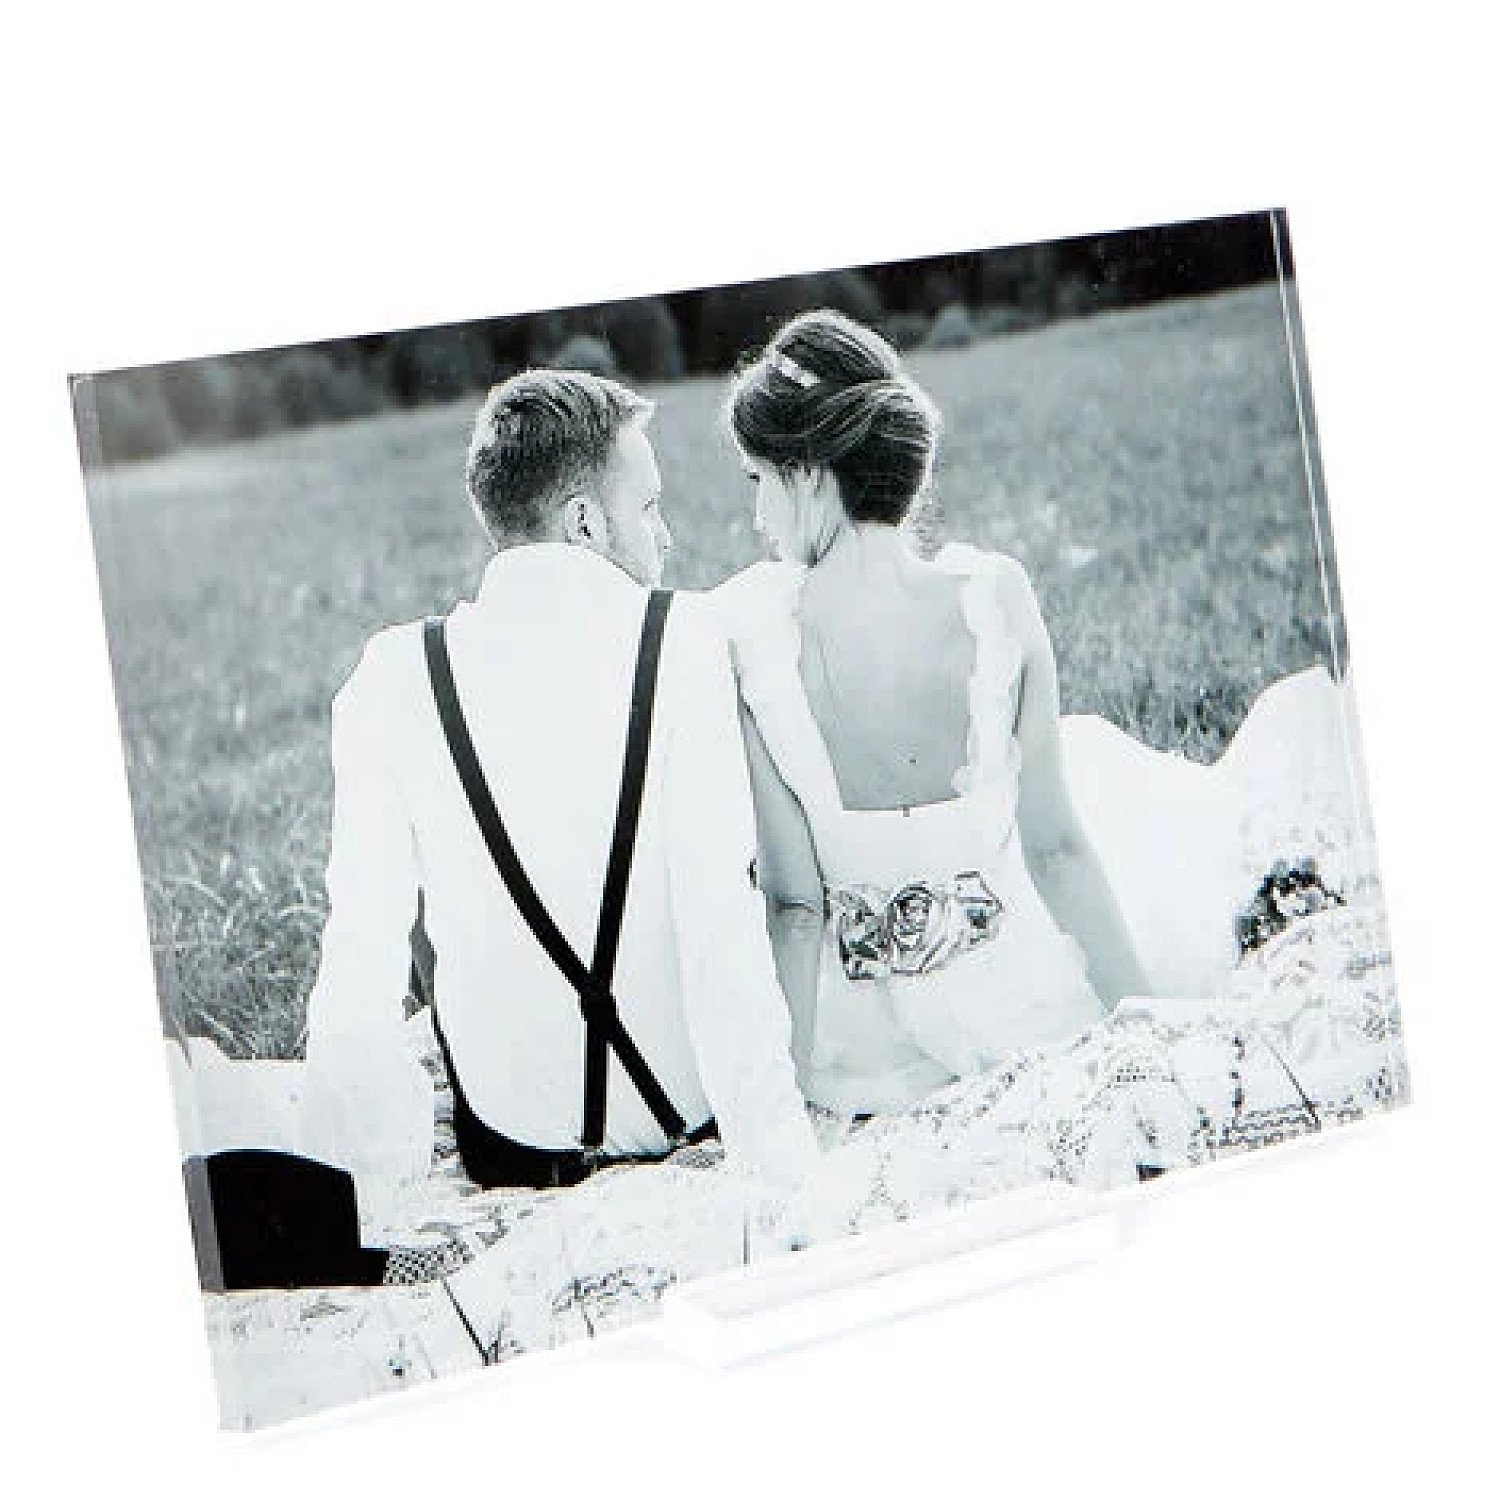 Personalised Acrylic Print - 6x4 Inches (Landscape) - £9.99!